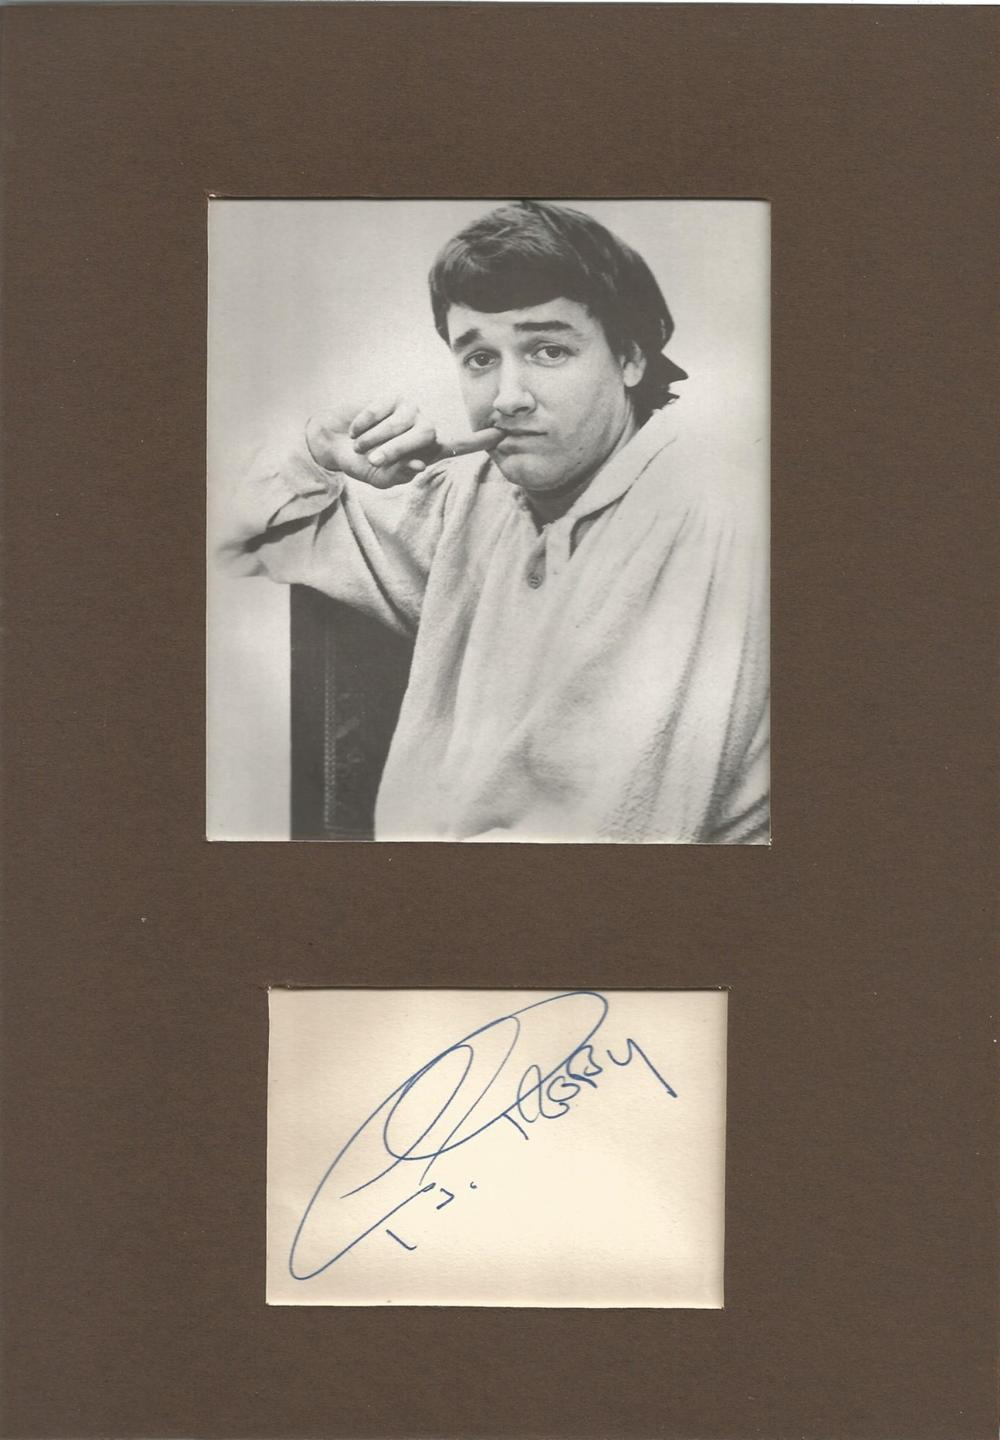 Singer P J Proby singed card mounted with 6x4 black and white image P J Proby is an American singer,